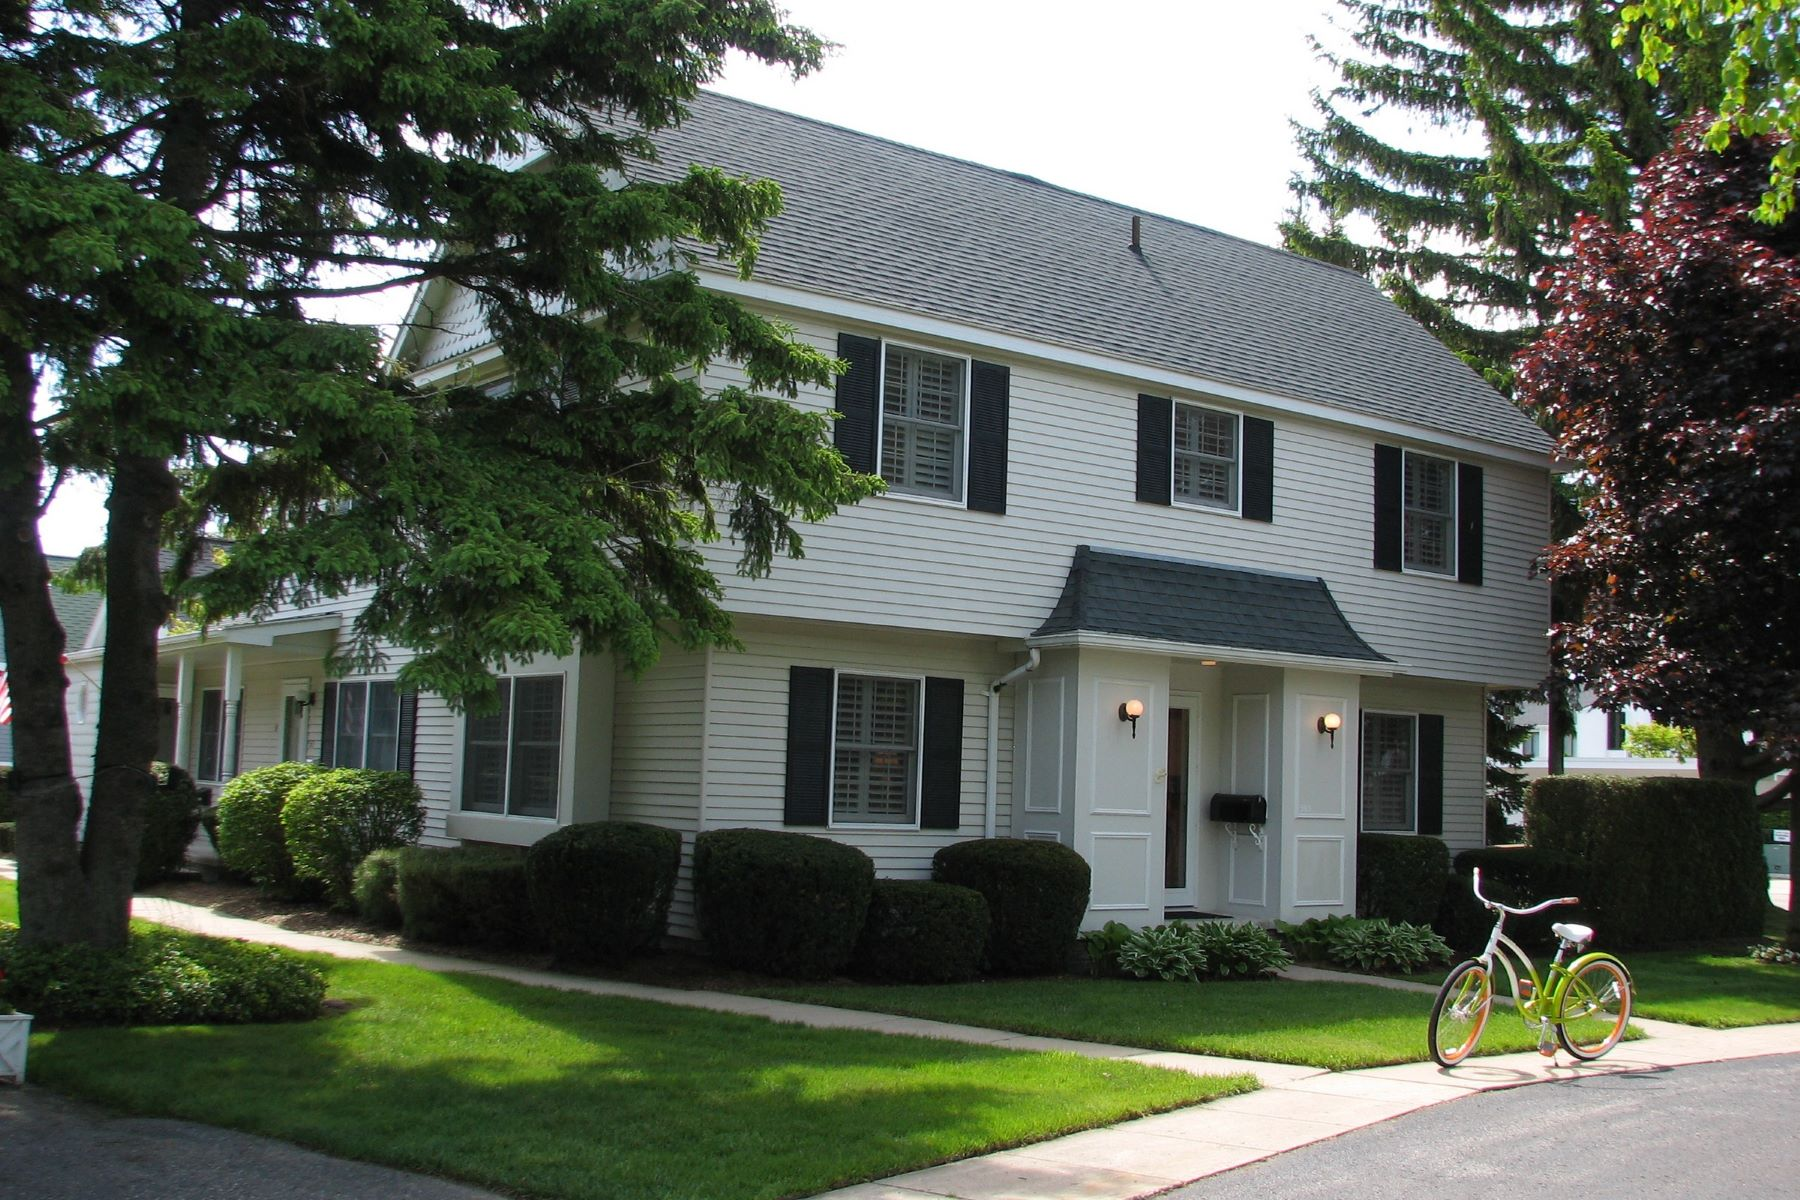 Condominium for Sale at 563 E. Bay Street #10 563 Bay Street #10 Harbor Springs, Michigan, 49740 United States